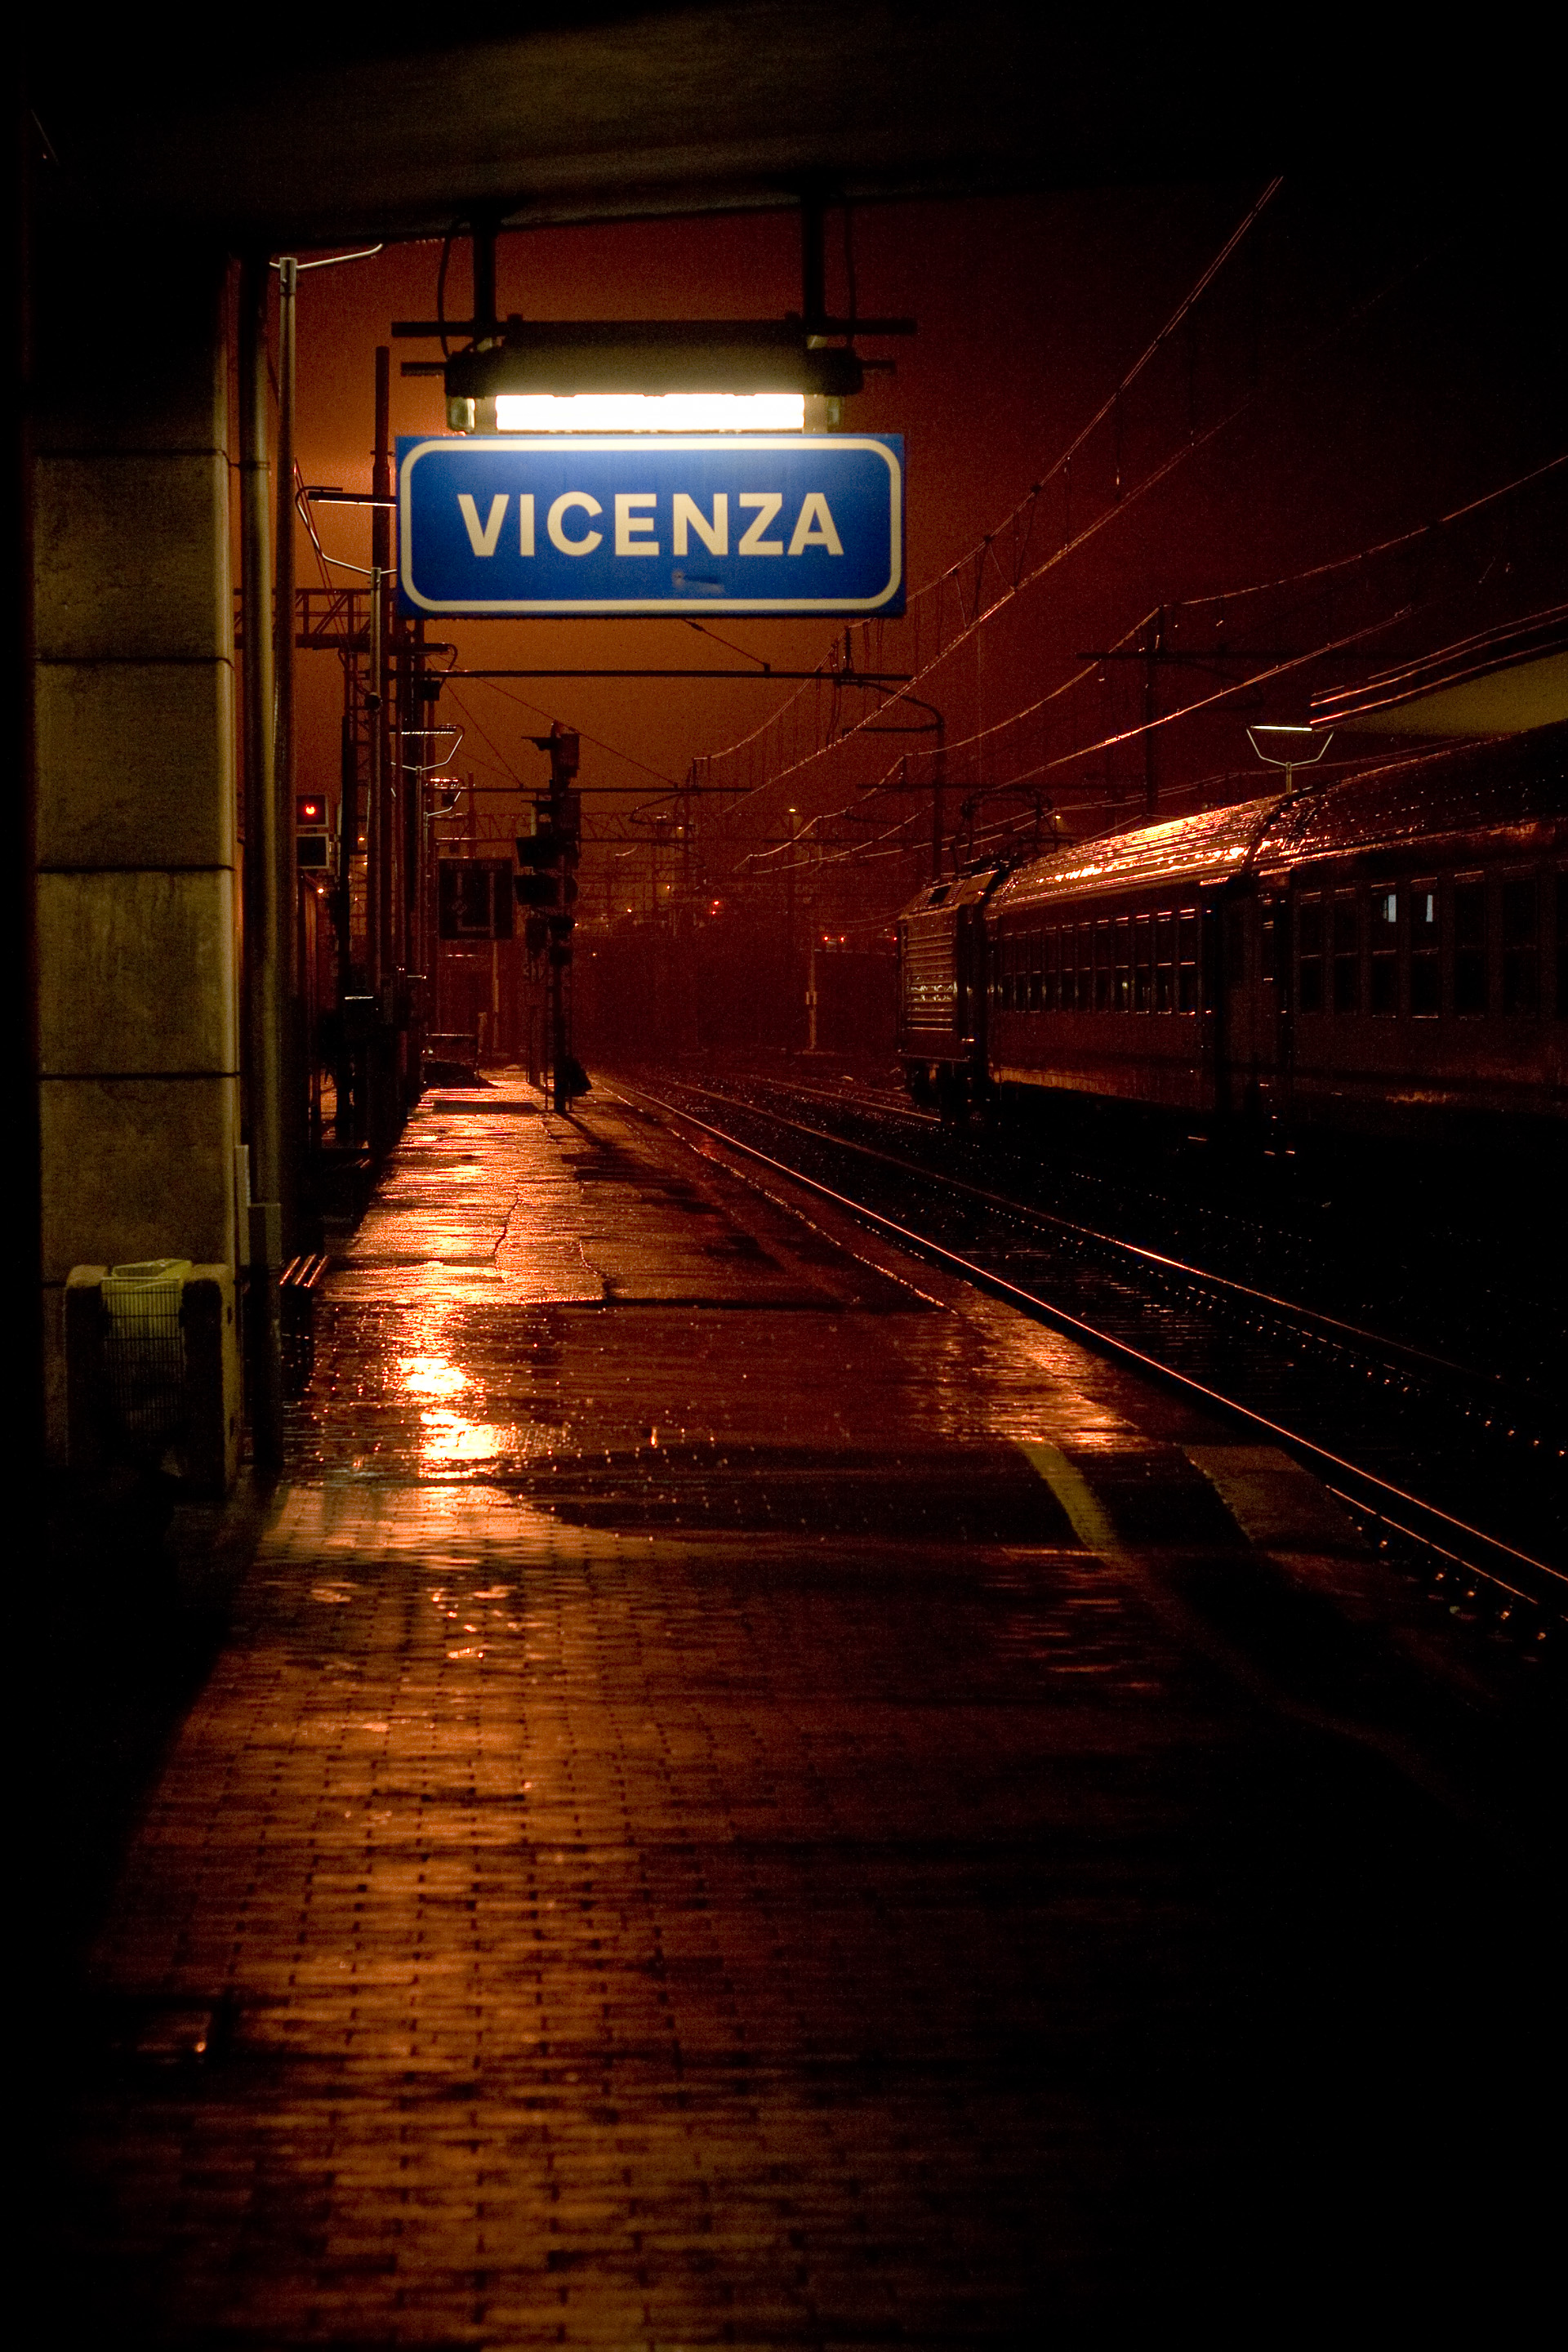 33 · Vicenza Click to view previous post